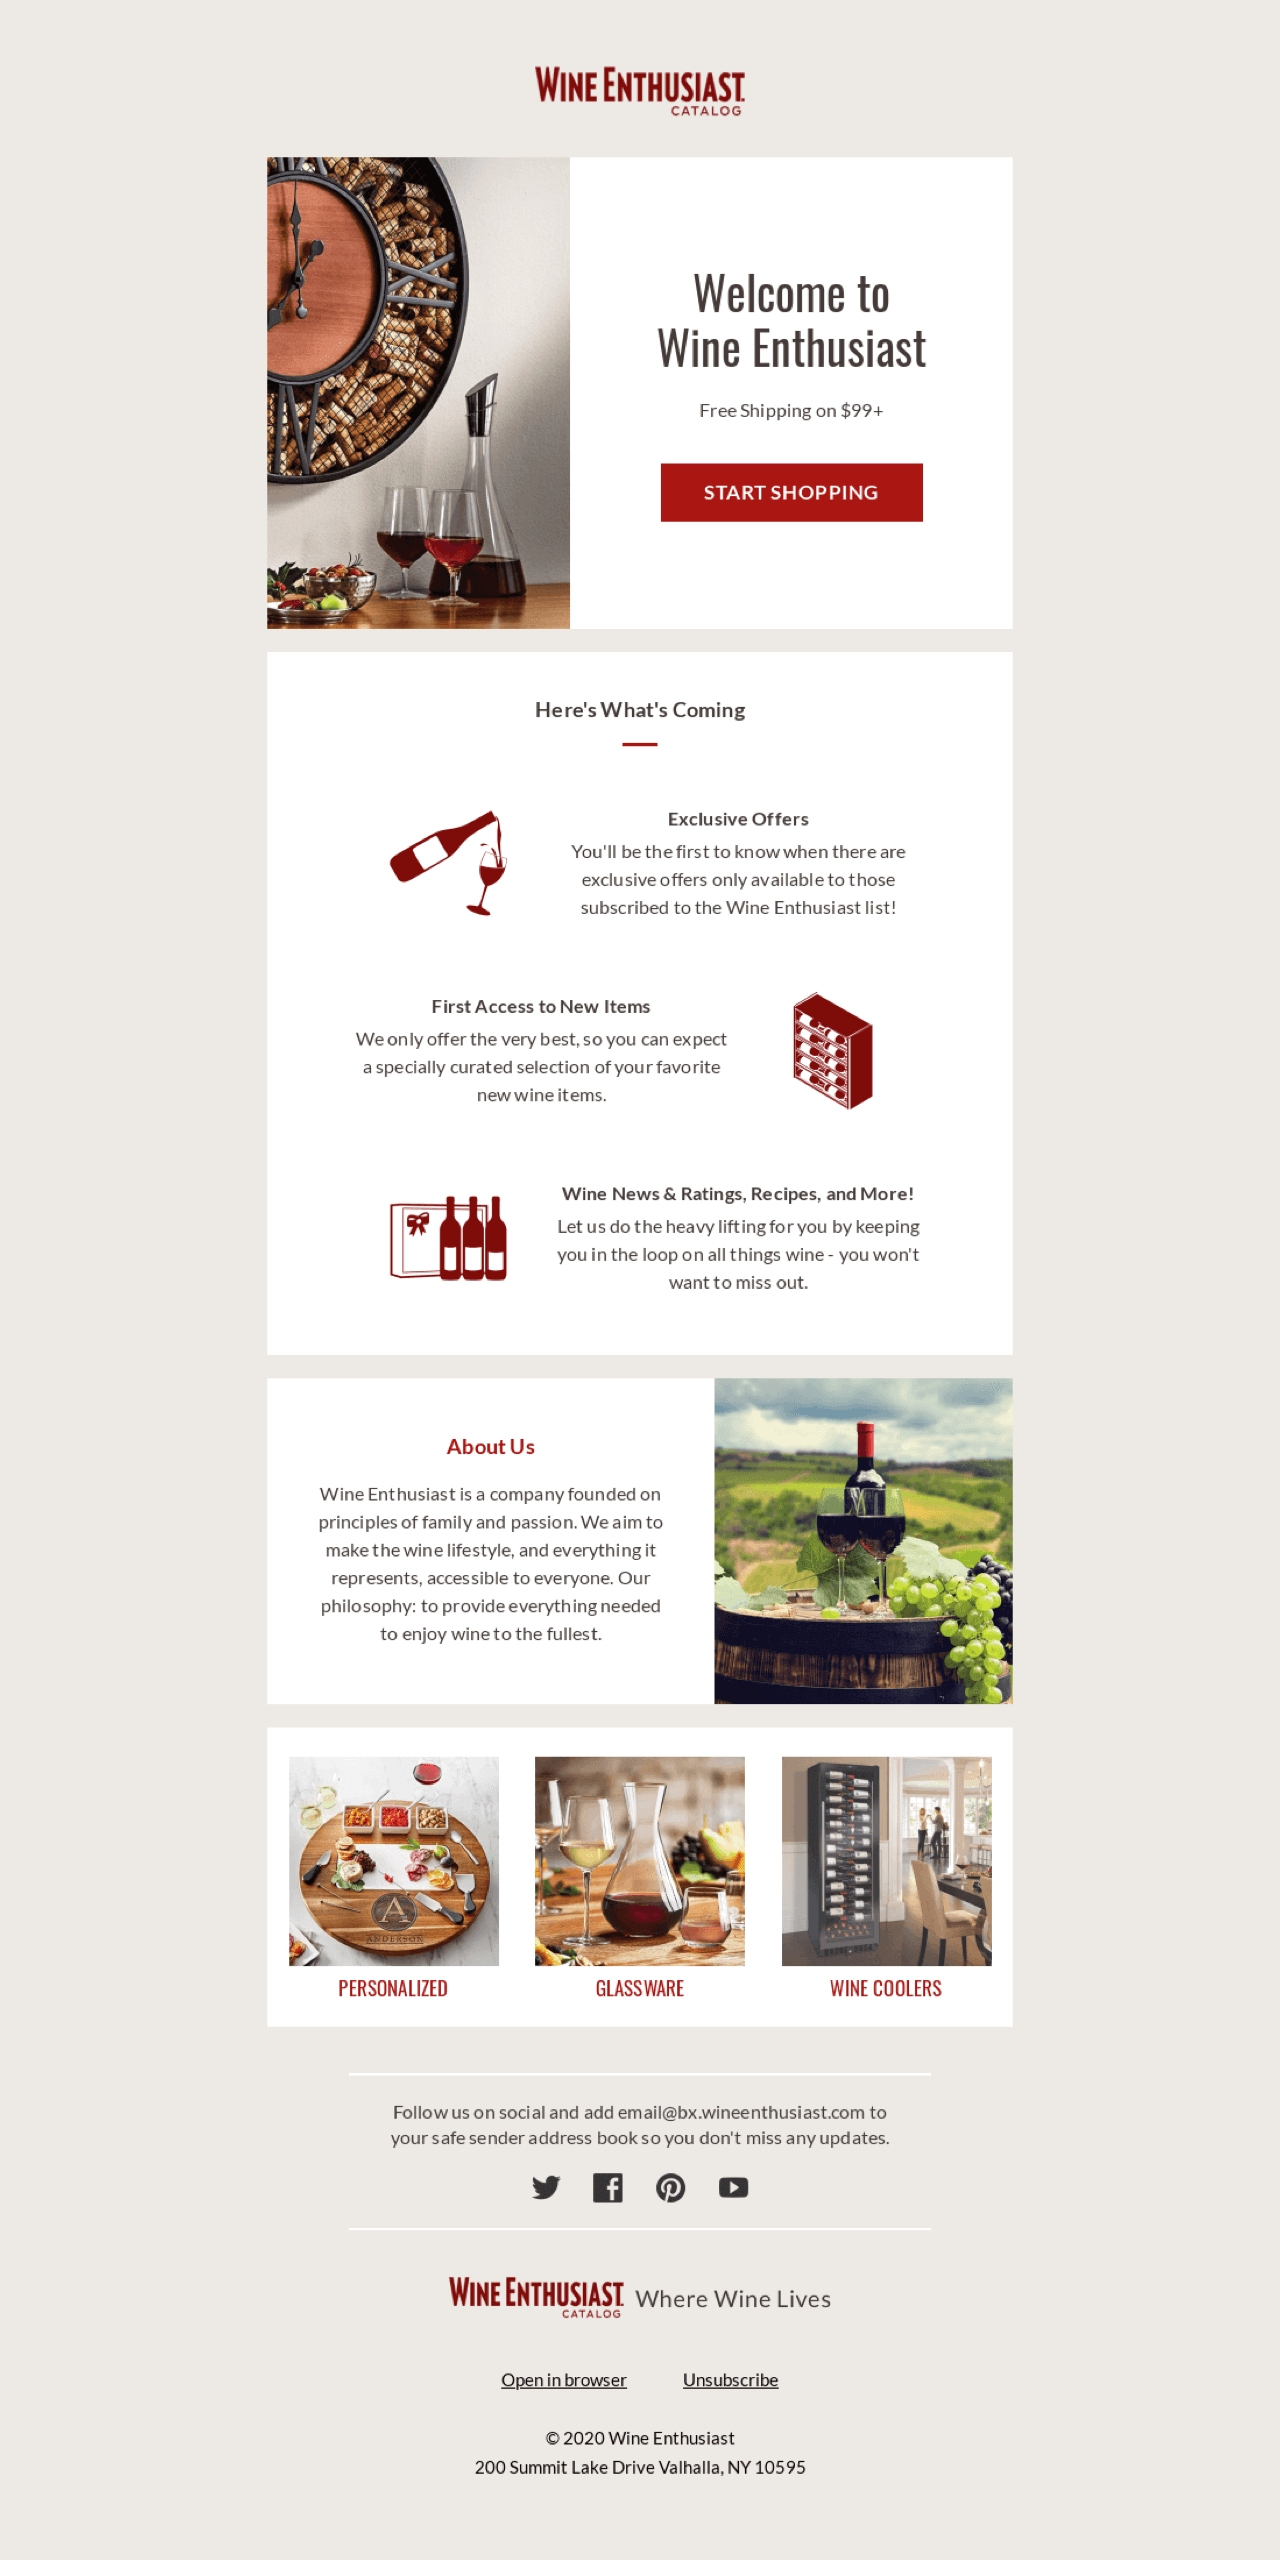 Wine Enthusiast highlights the value of subscribing in their welcome email